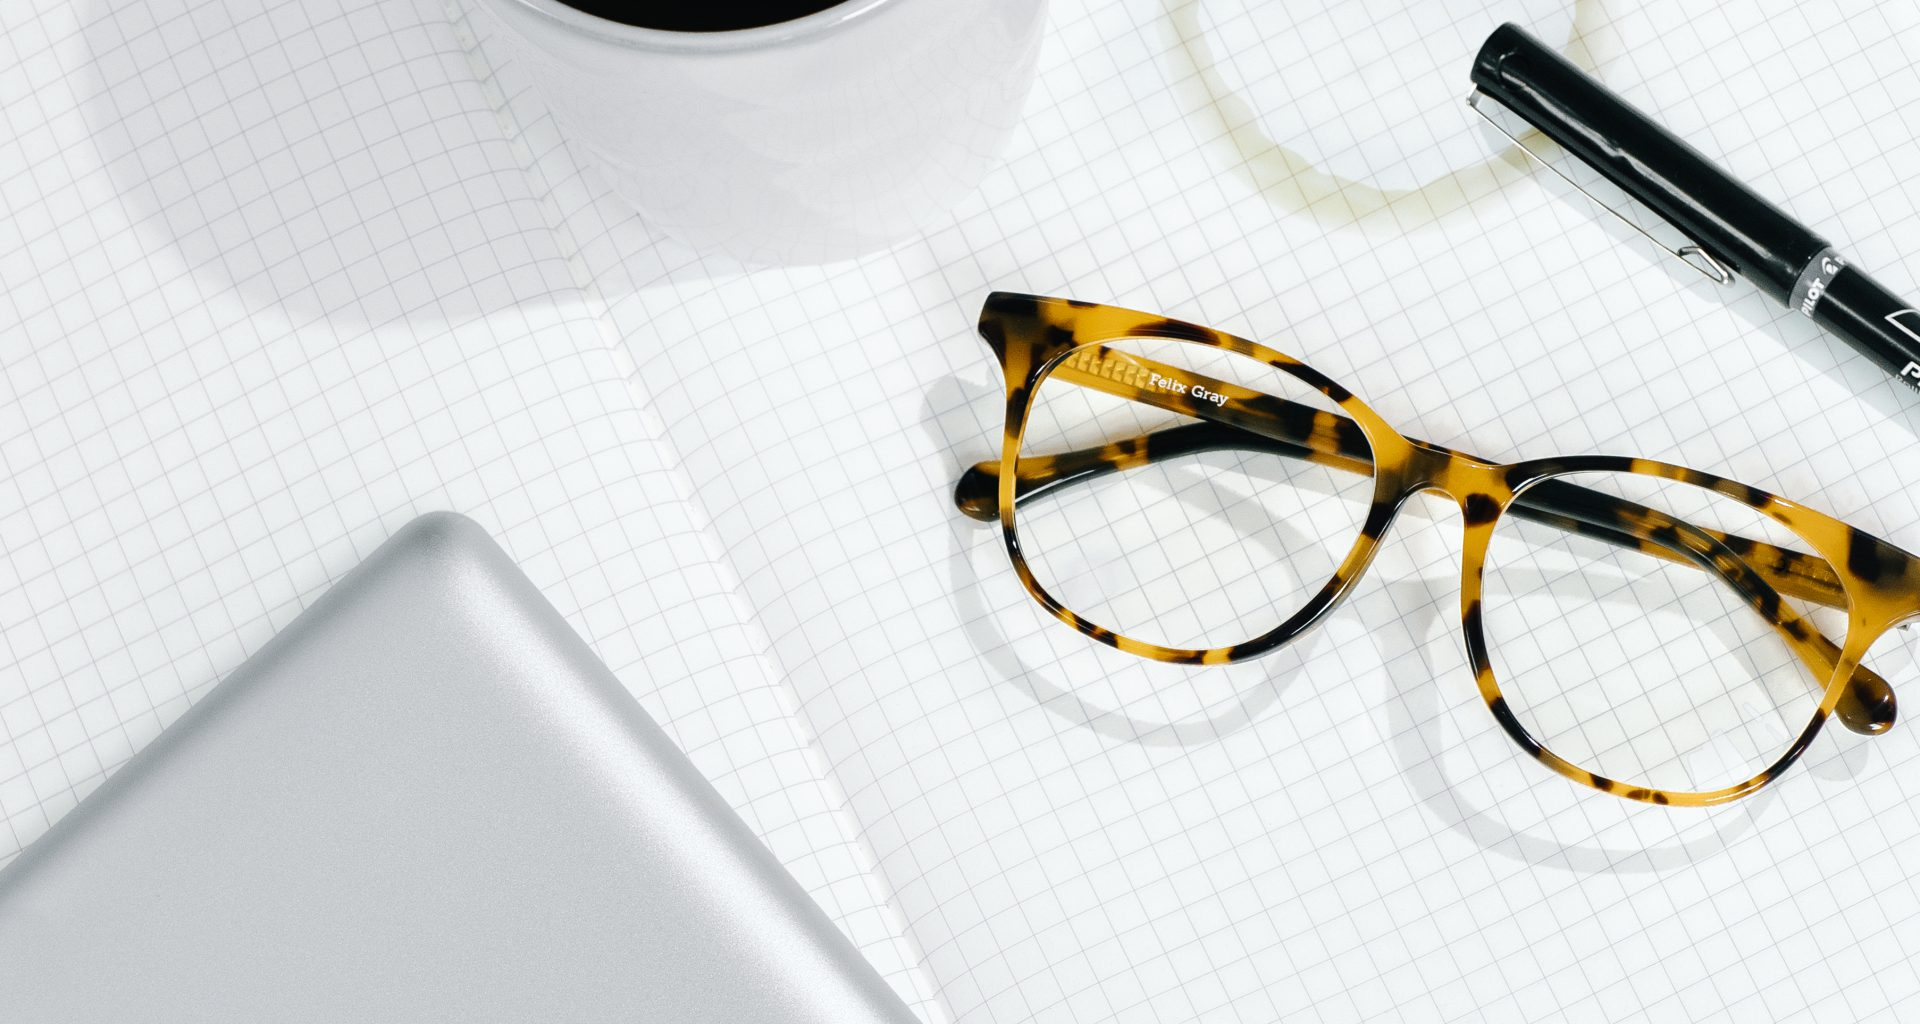 Felix Gray Glasses with iPad and pen